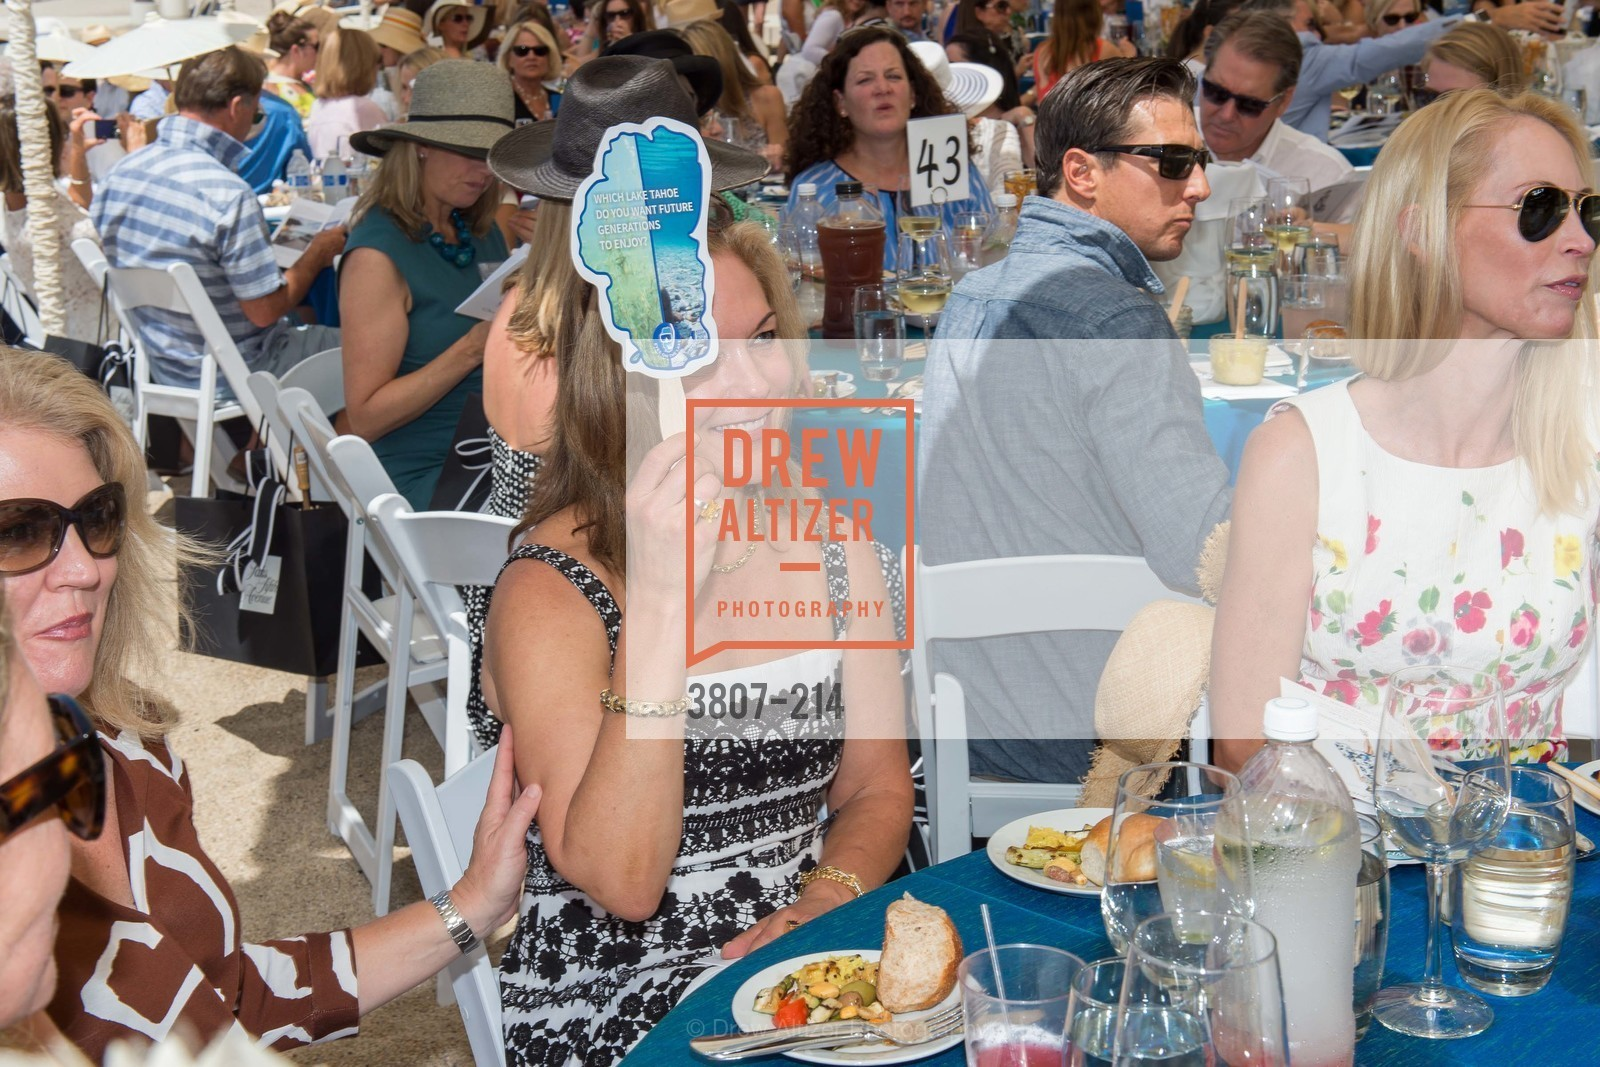 Darayn Hickingbotham, Saks Fifth Avenue and The League to Save Lake Tahoe Present Fashion on the Lake, Private Residence, August 1st, 2015,Drew Altizer, Drew Altizer Photography, full-service agency, private events, San Francisco photographer, photographer california